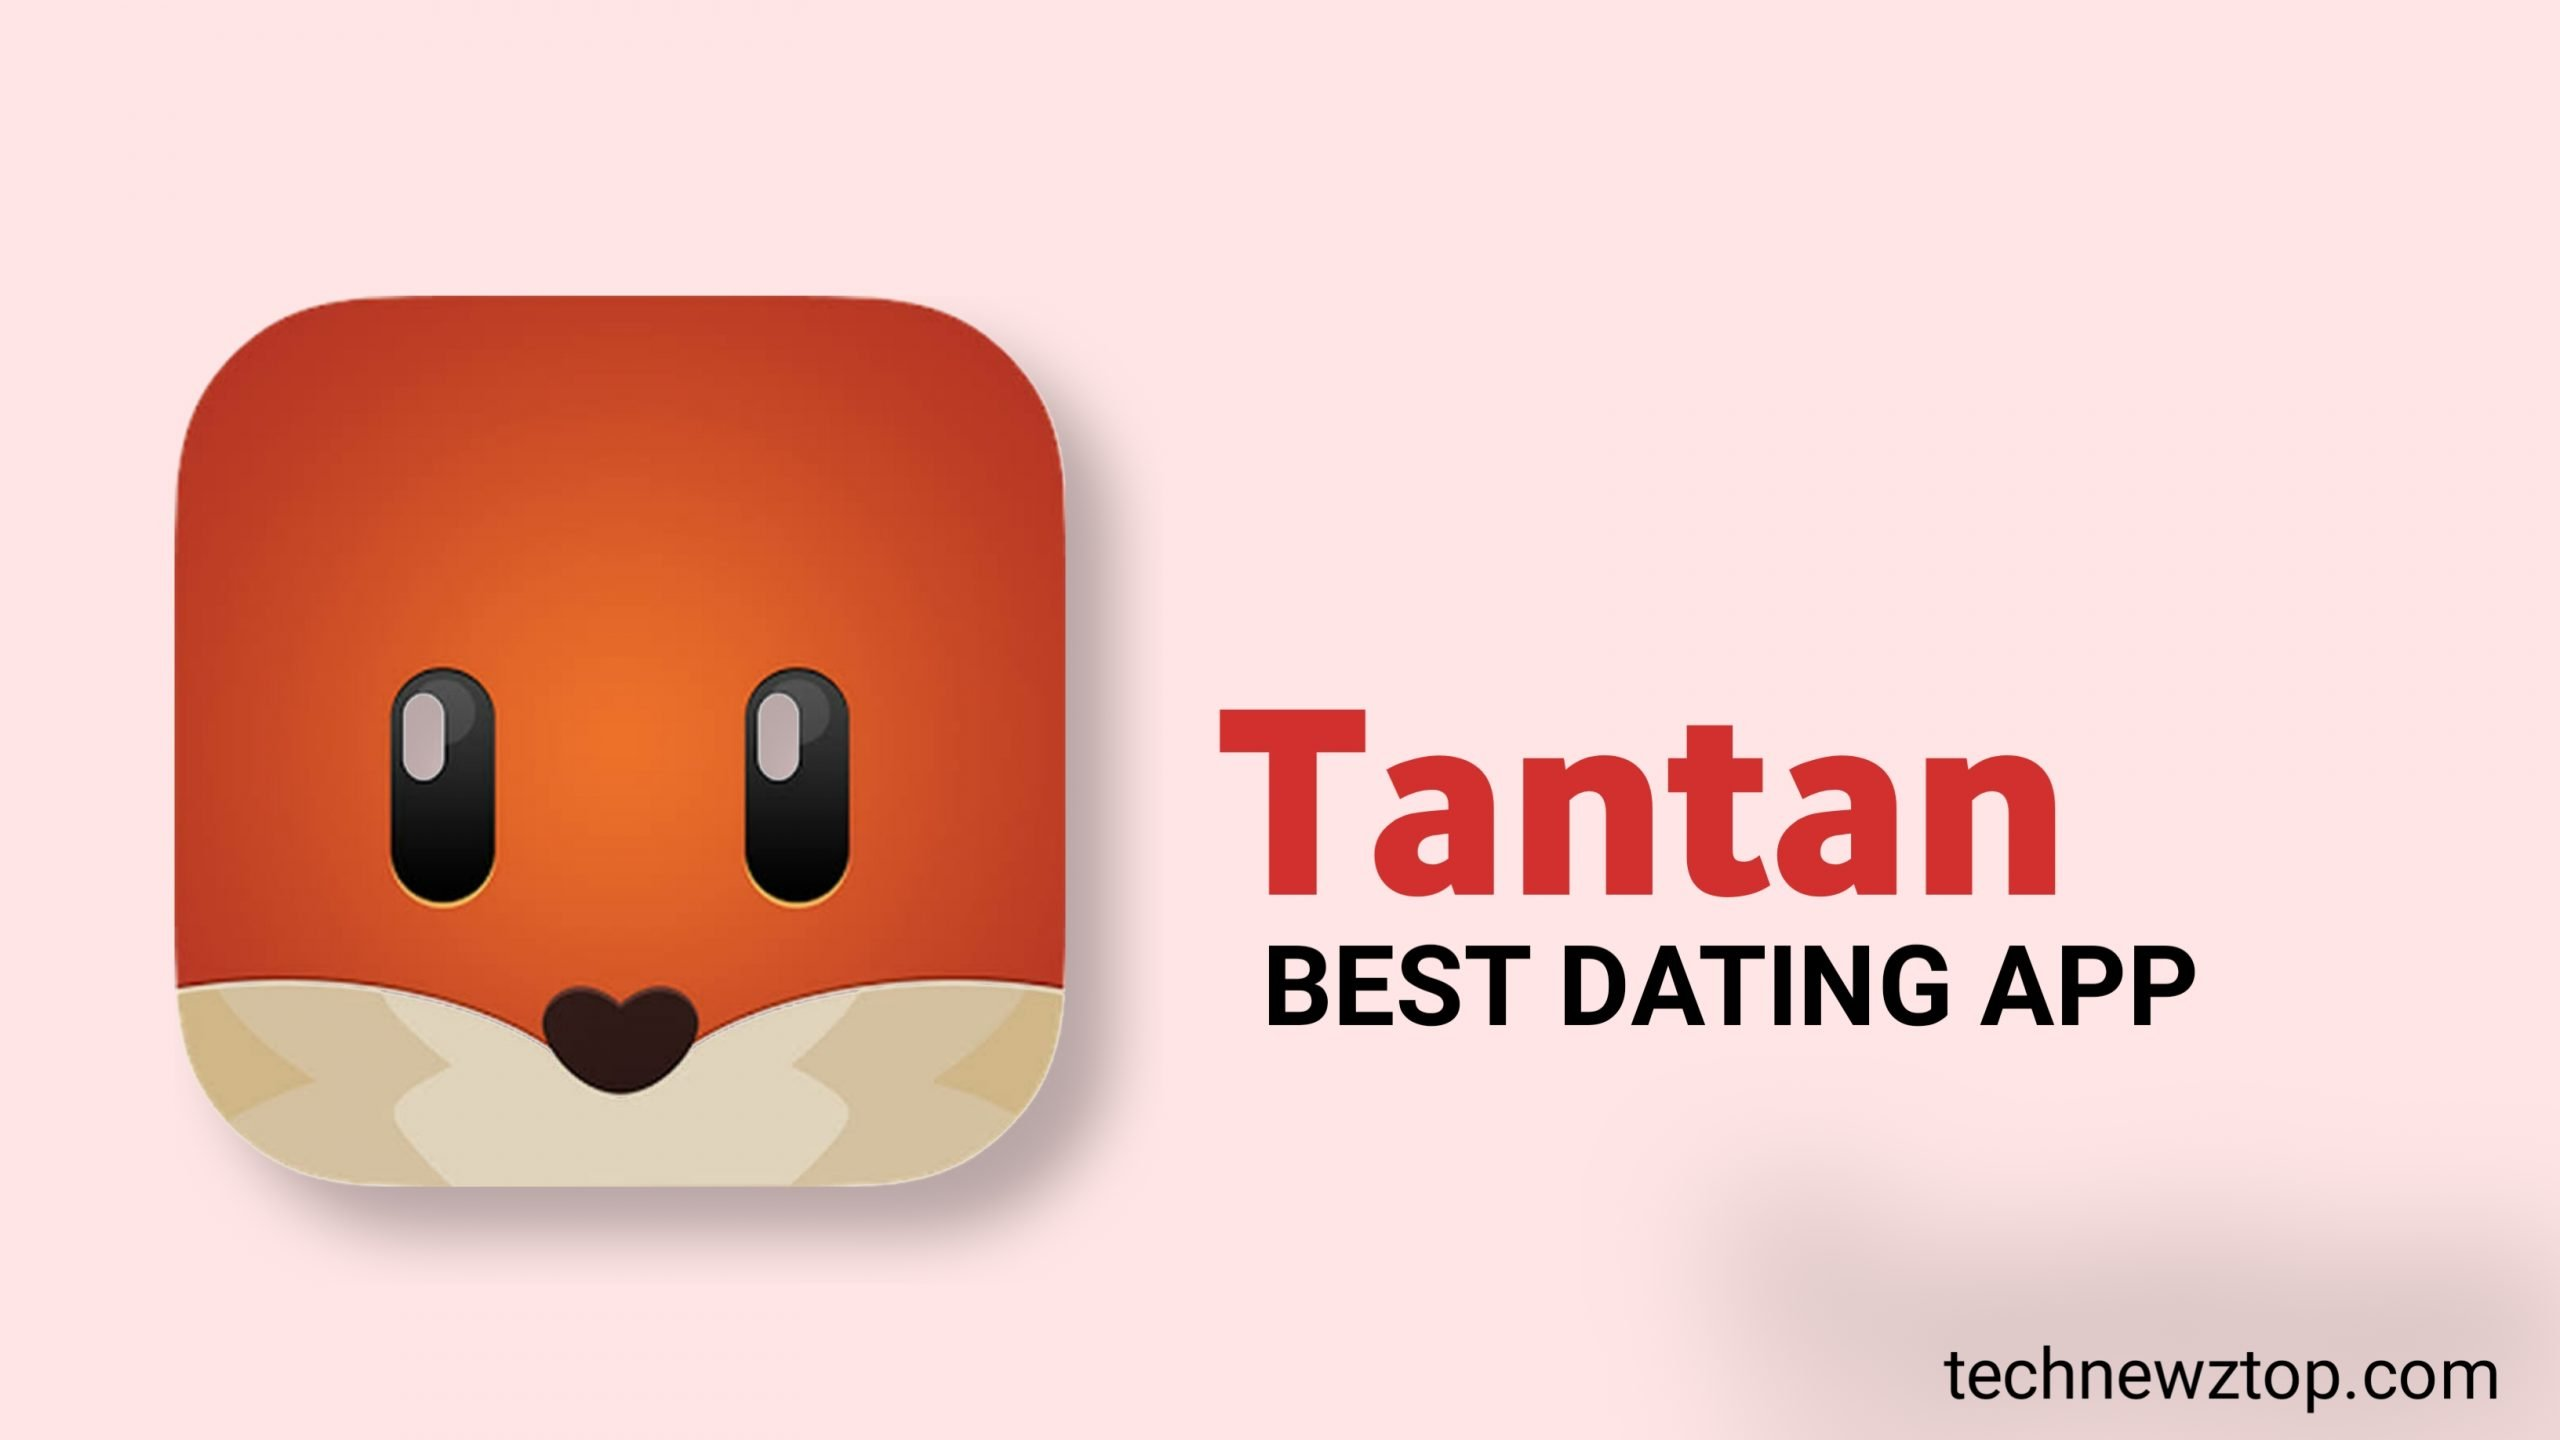 What is Tantan App and How to use the Tantan app?